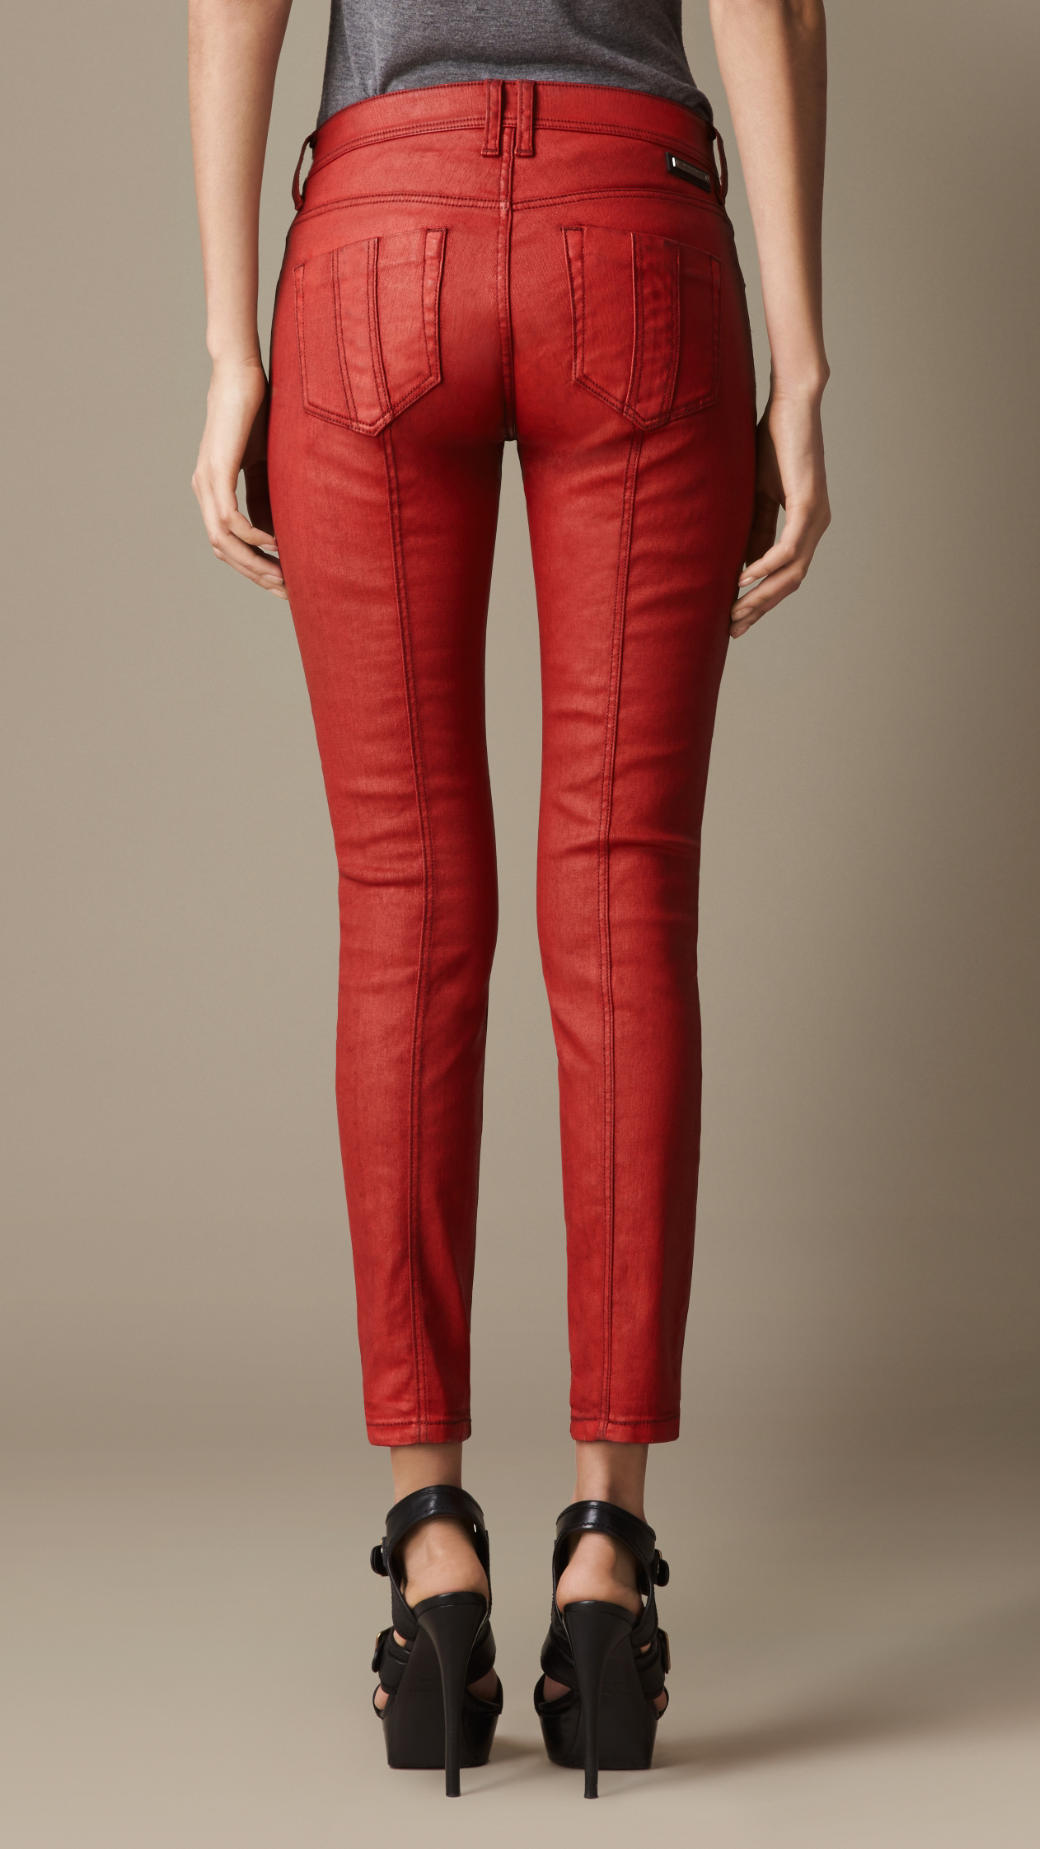 Burberry Westbourne Coated Skinny Fit Jeans in Red | Lyst